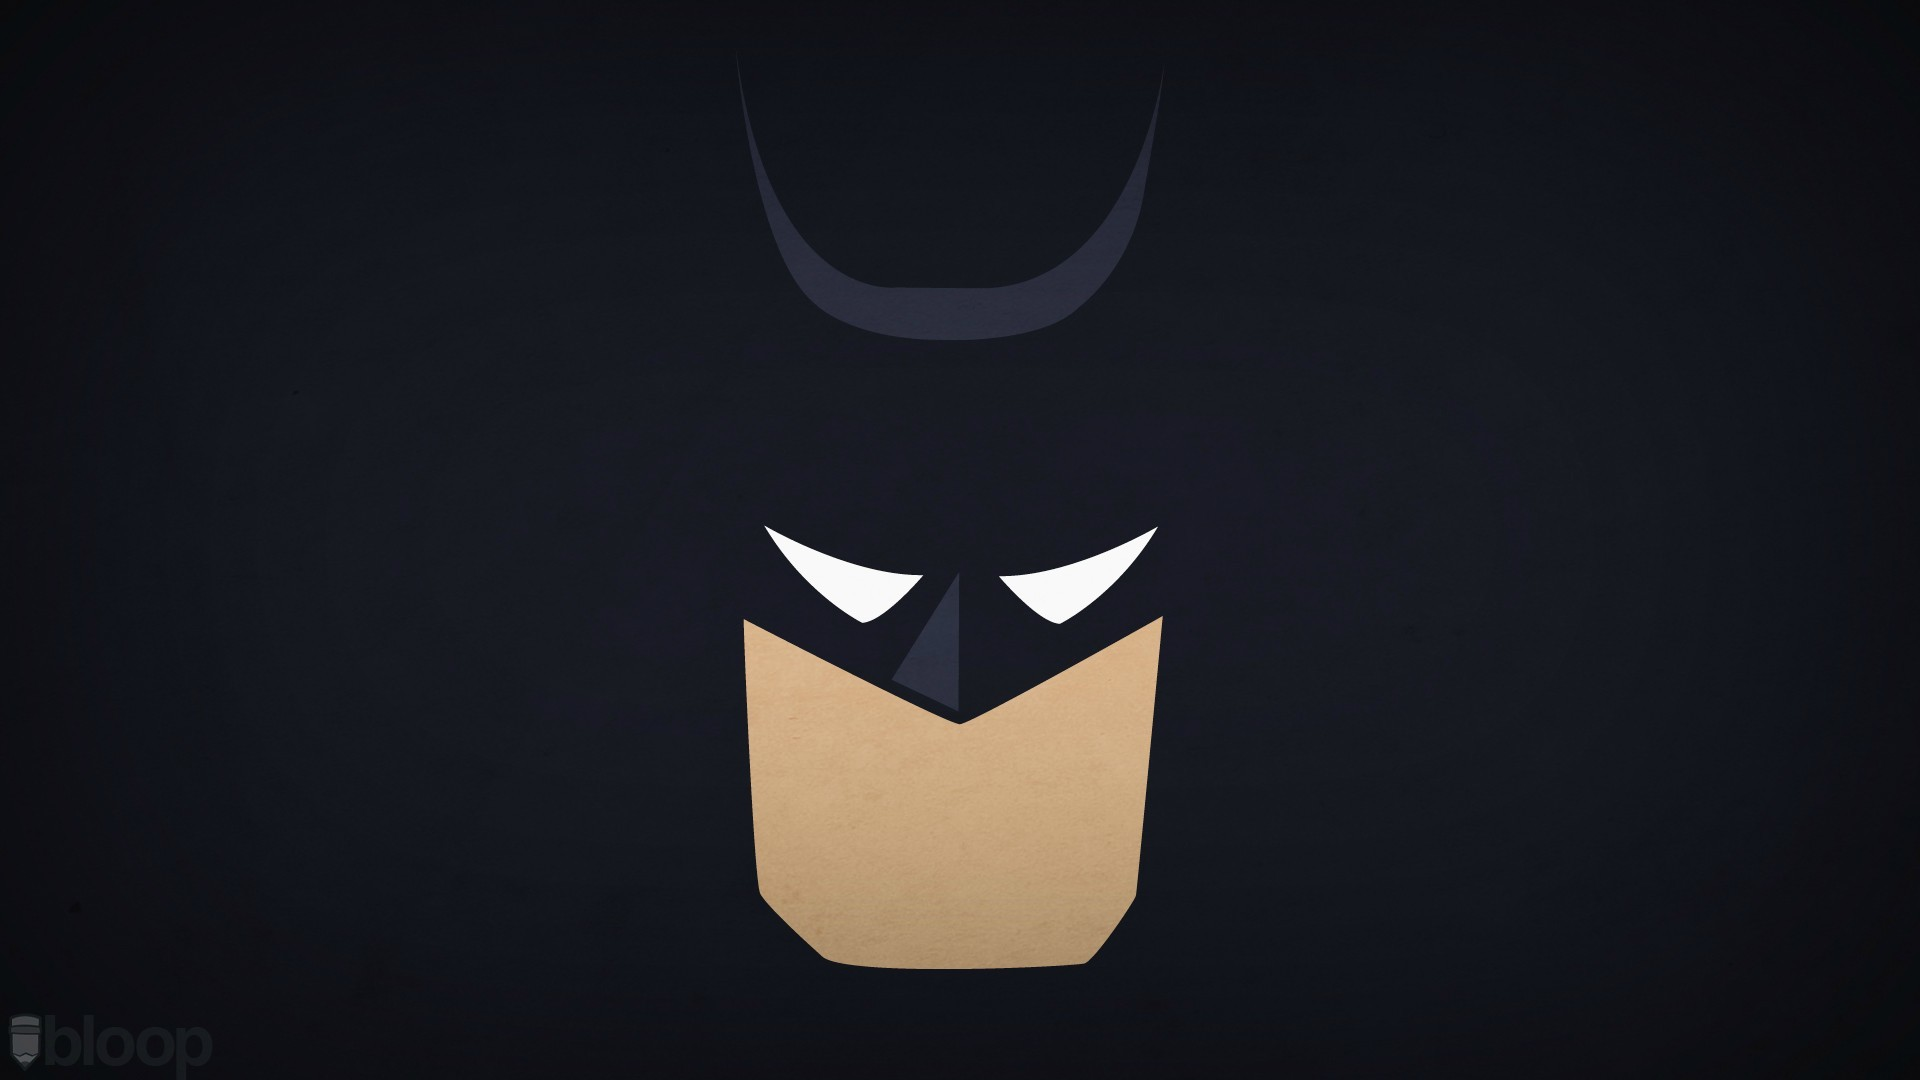 1920x1080 Minimalist Superhero Wallpapers by bloOp